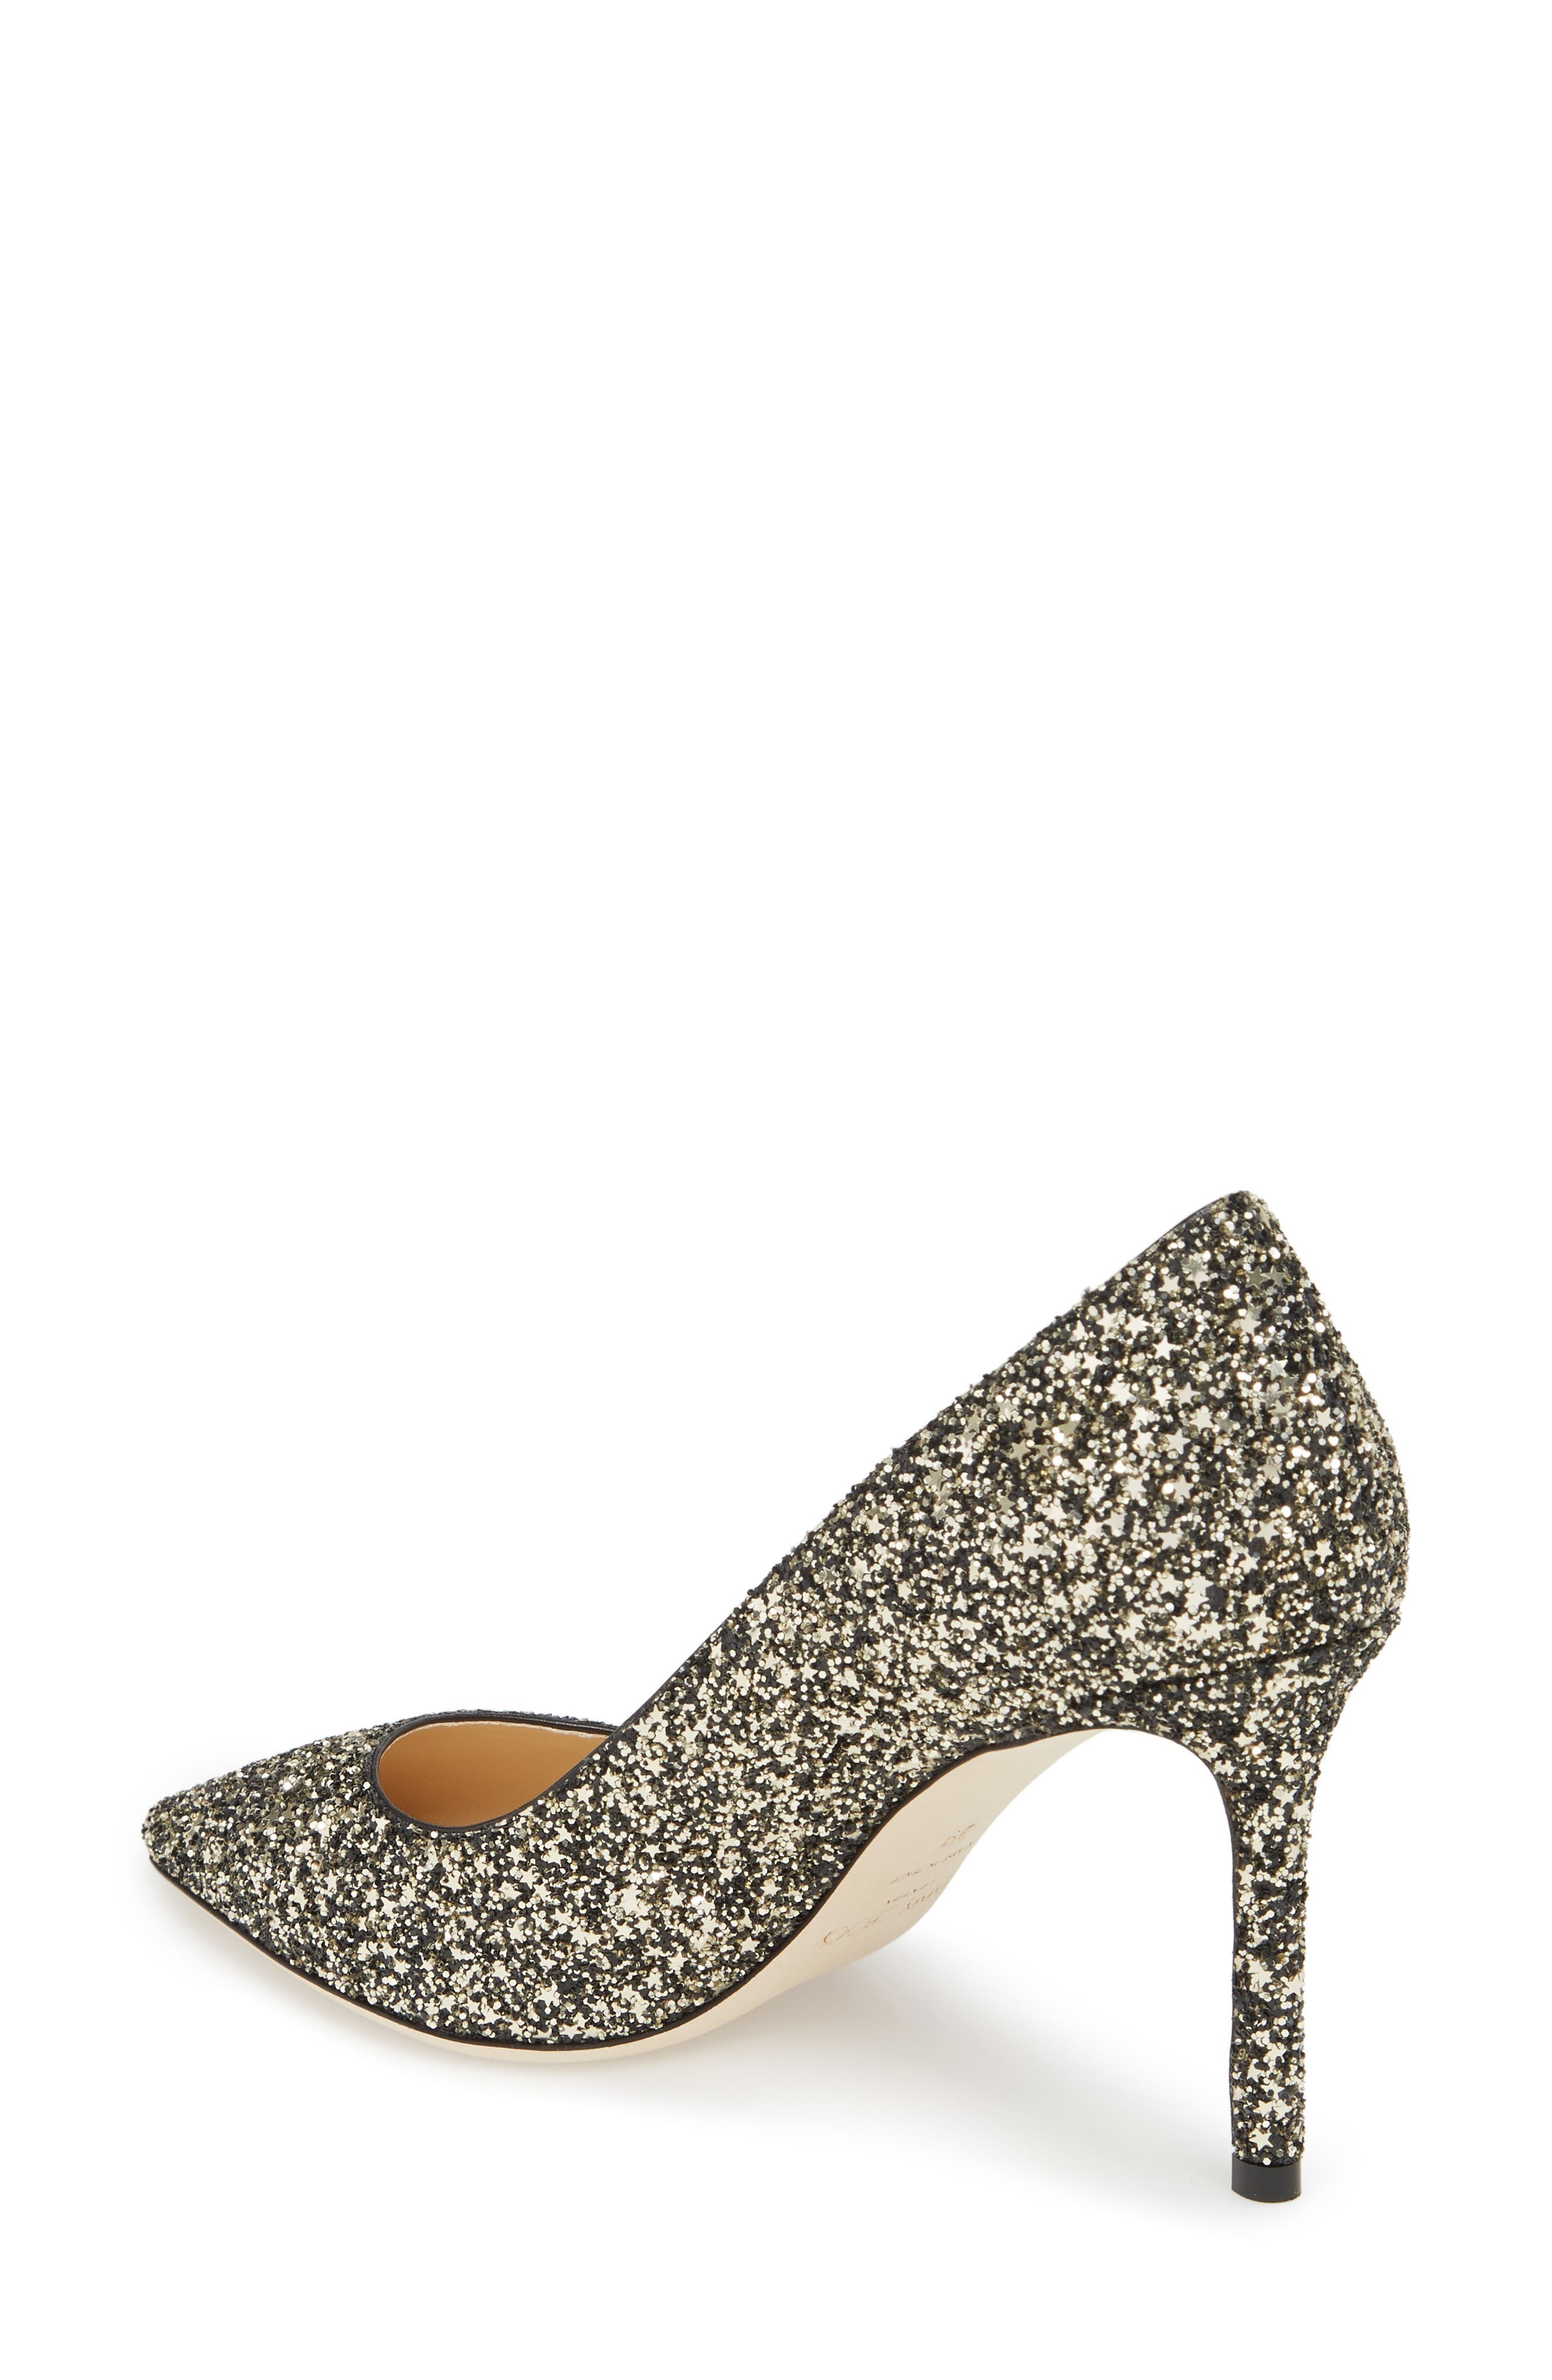 Romy Glitter Pointy Toe Pump,                             Alternate thumbnail 2, color,                             Gold Mix